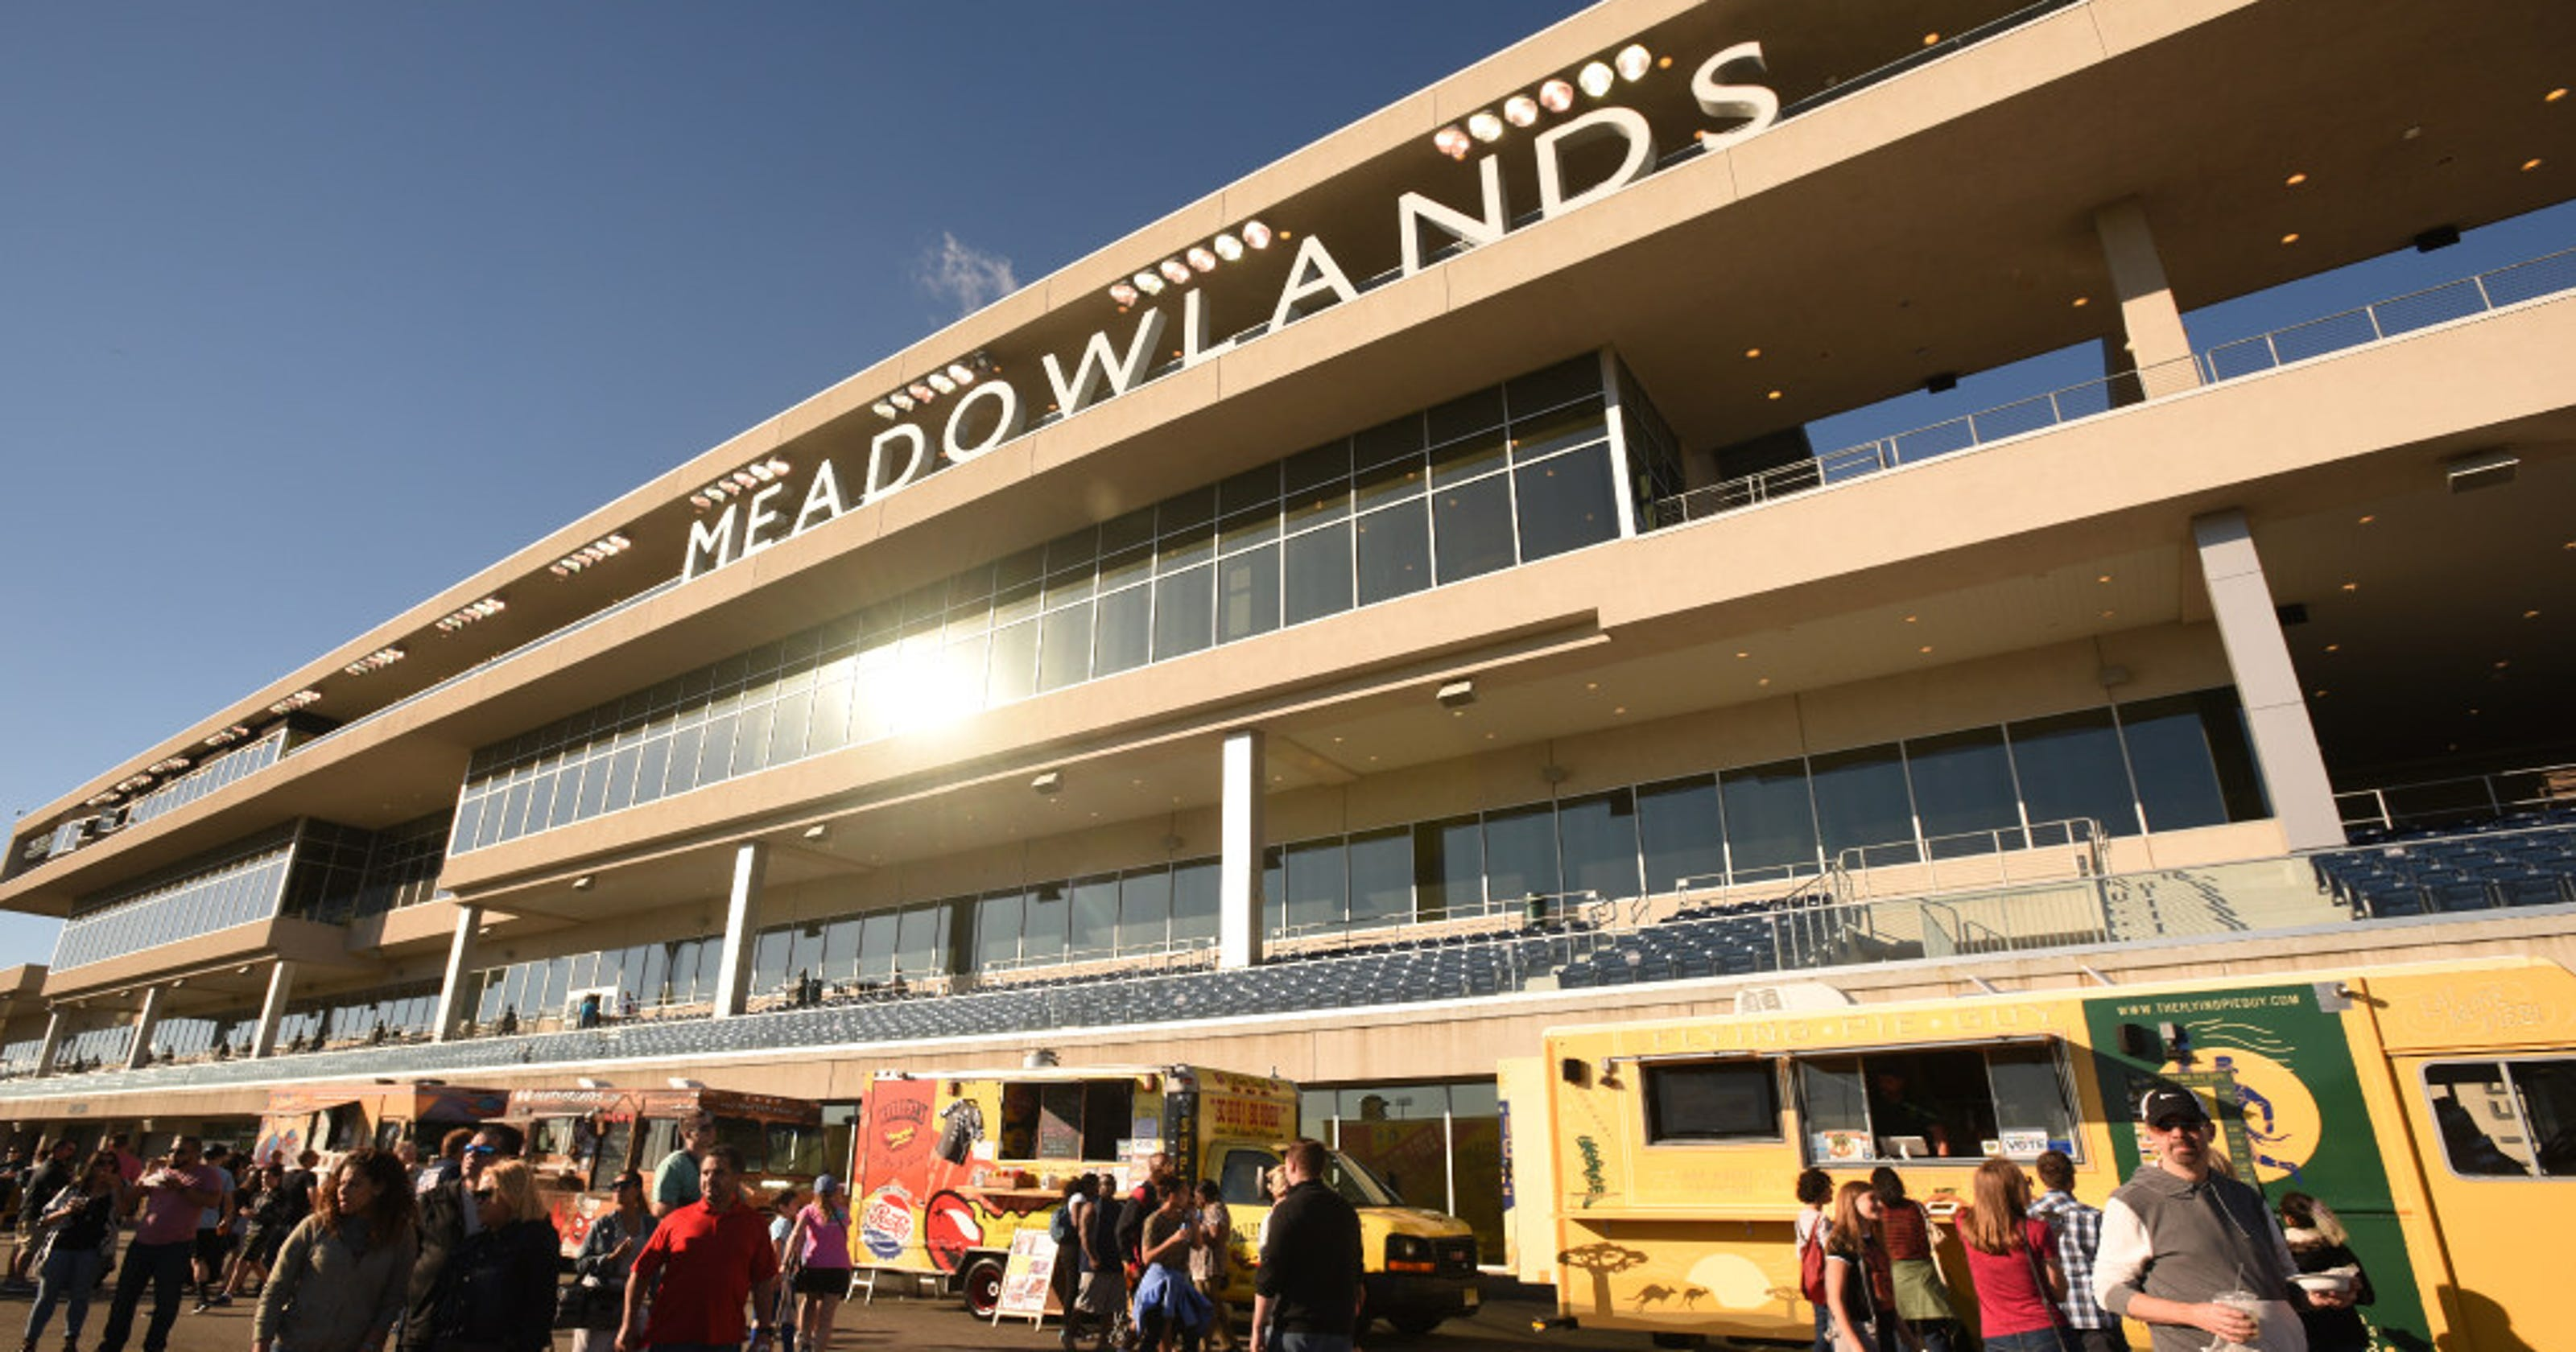 The Meadowlands Racetrack